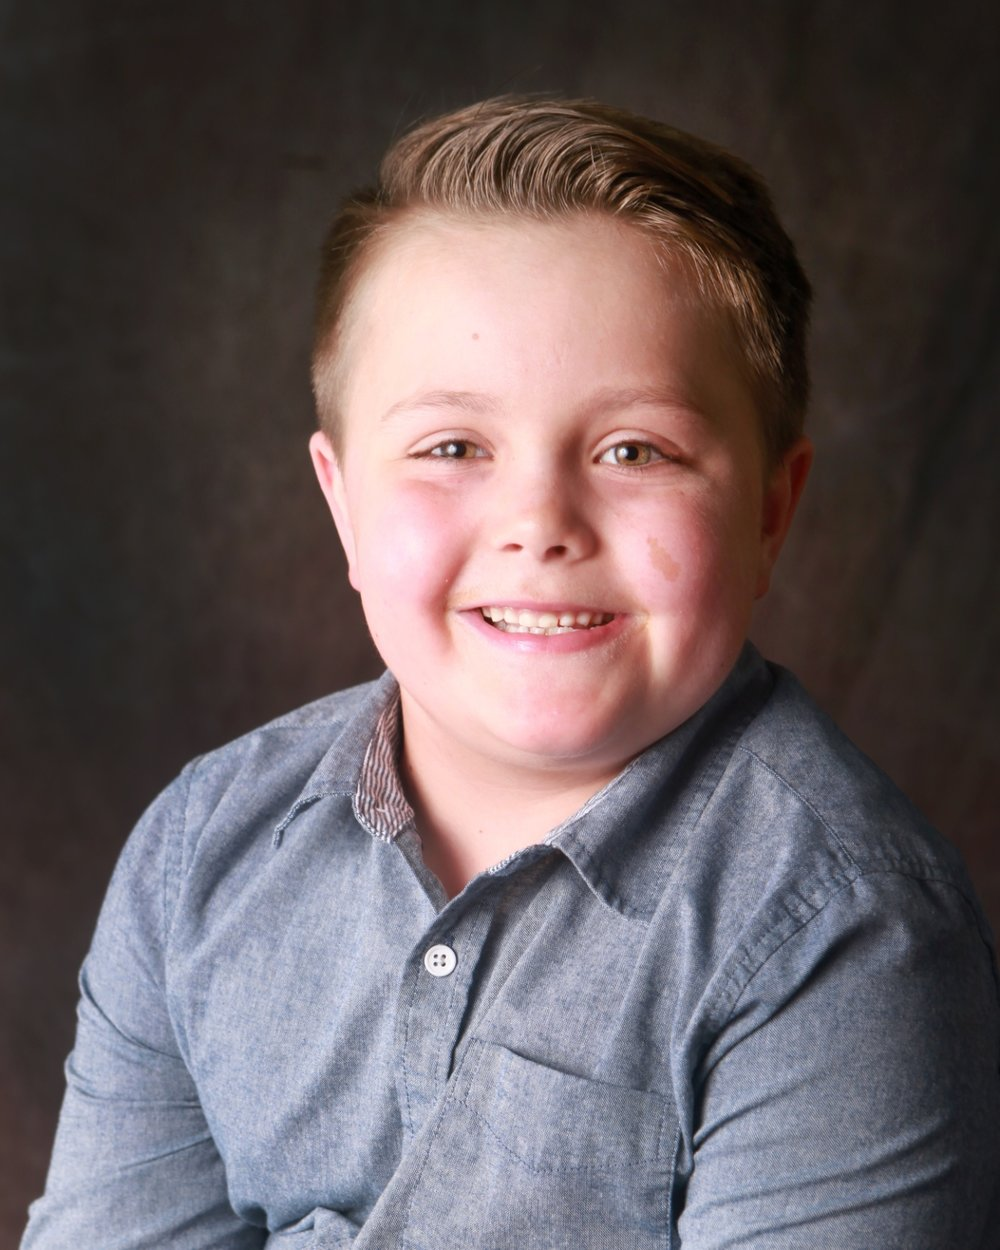 Connor Benjamin, 7, Richardson